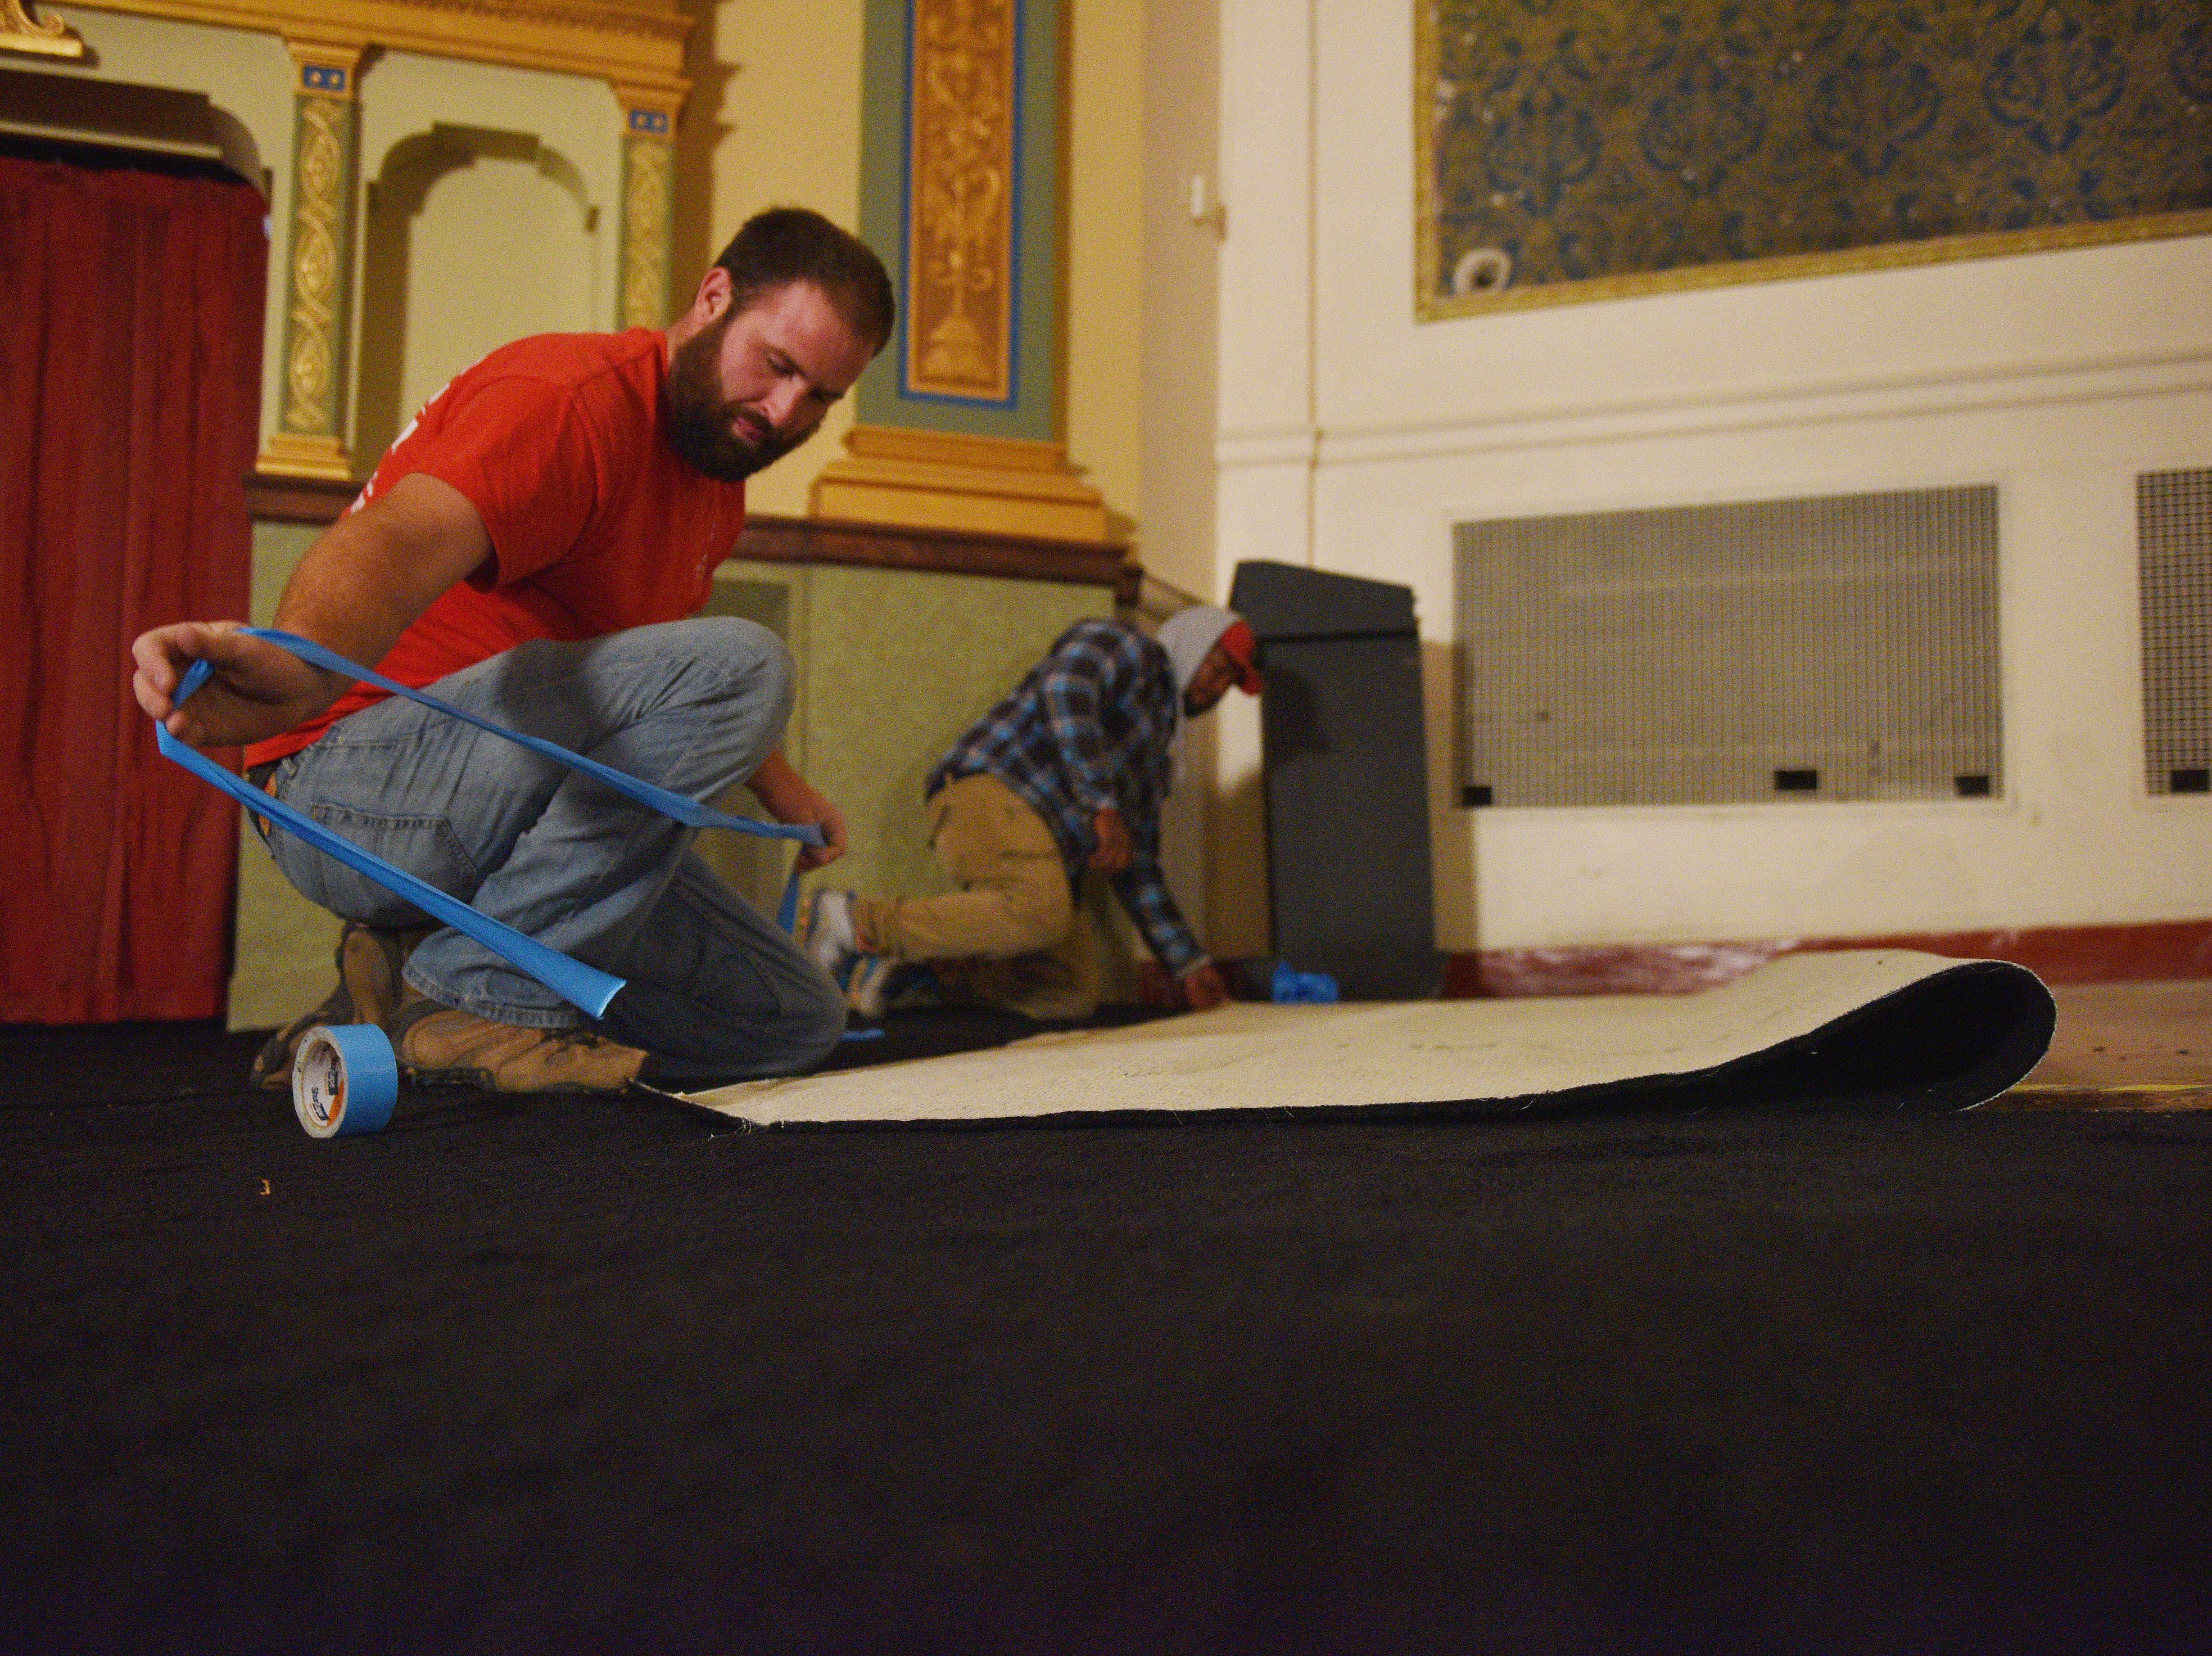 ABC Rental employees Tyler Busch, left, and Desean Waters, right, lay out carpet for the State Theatre prior to the open house on Tuesday, Oct. 2, in downtown Sioux Falls. The State Theatre has been undergoing updates and renovations for years.